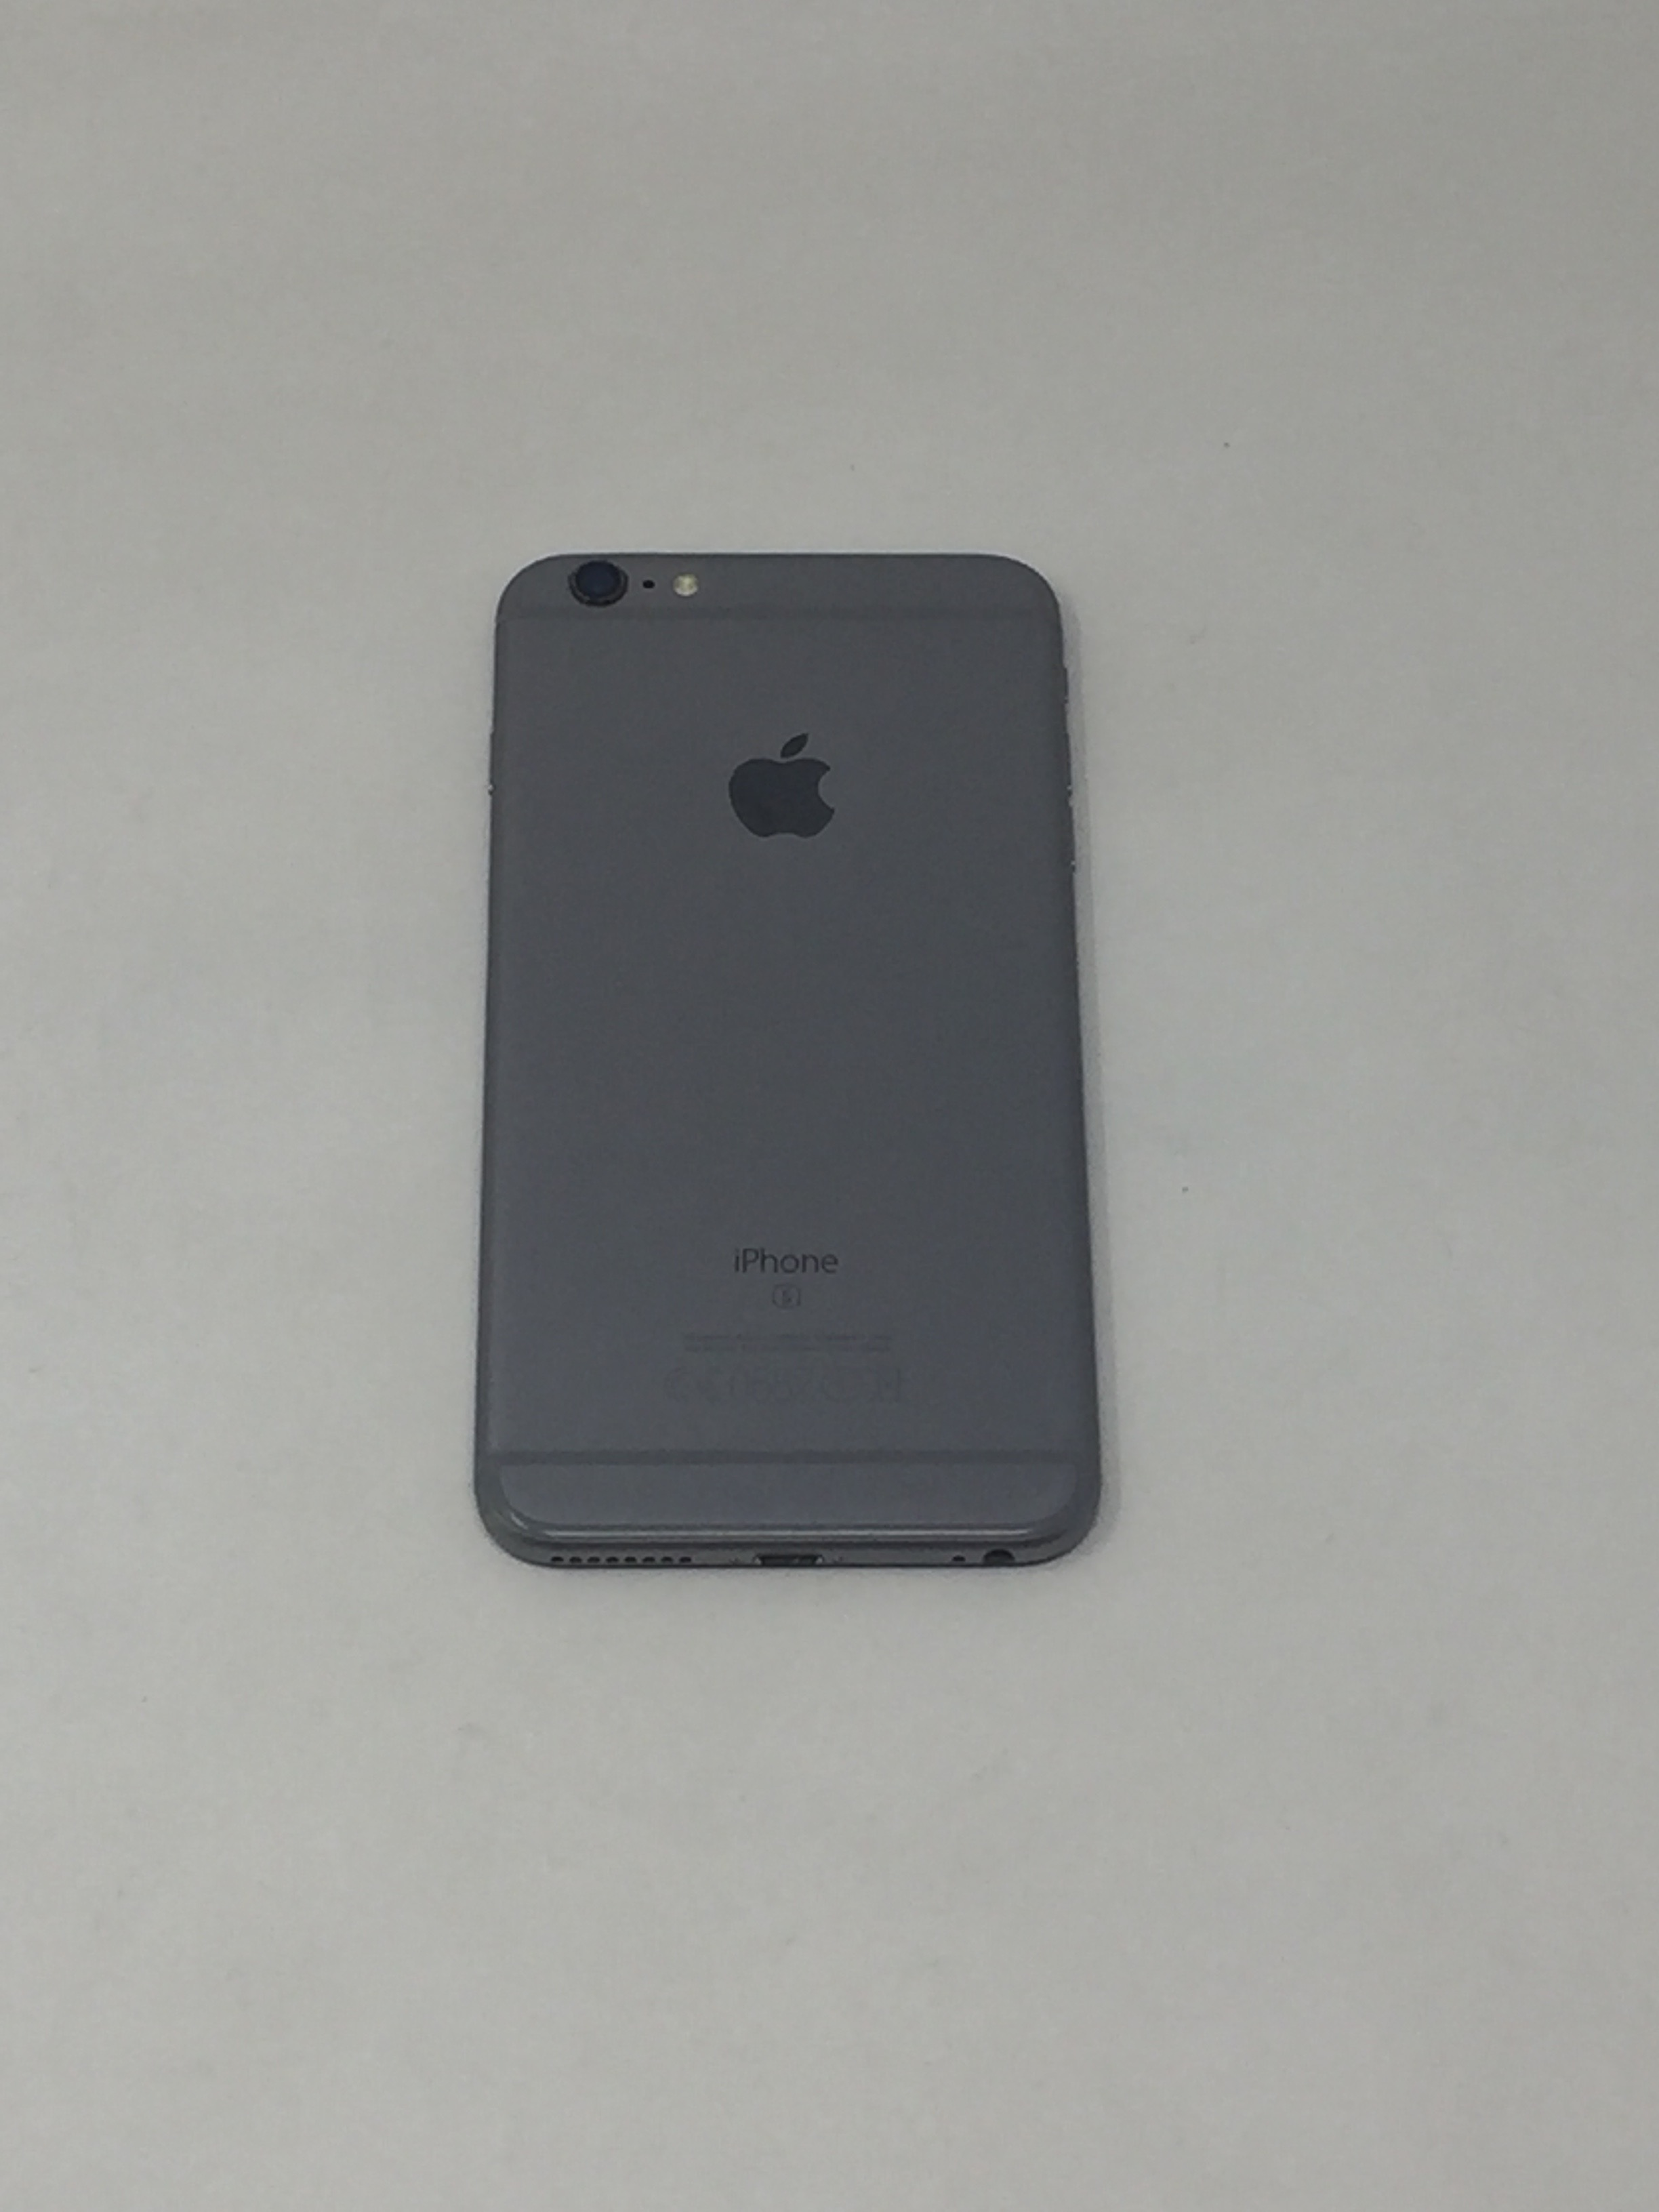 iPhone 6S Plus 16GB, 16 GB, SPACE GRAY, bild 2